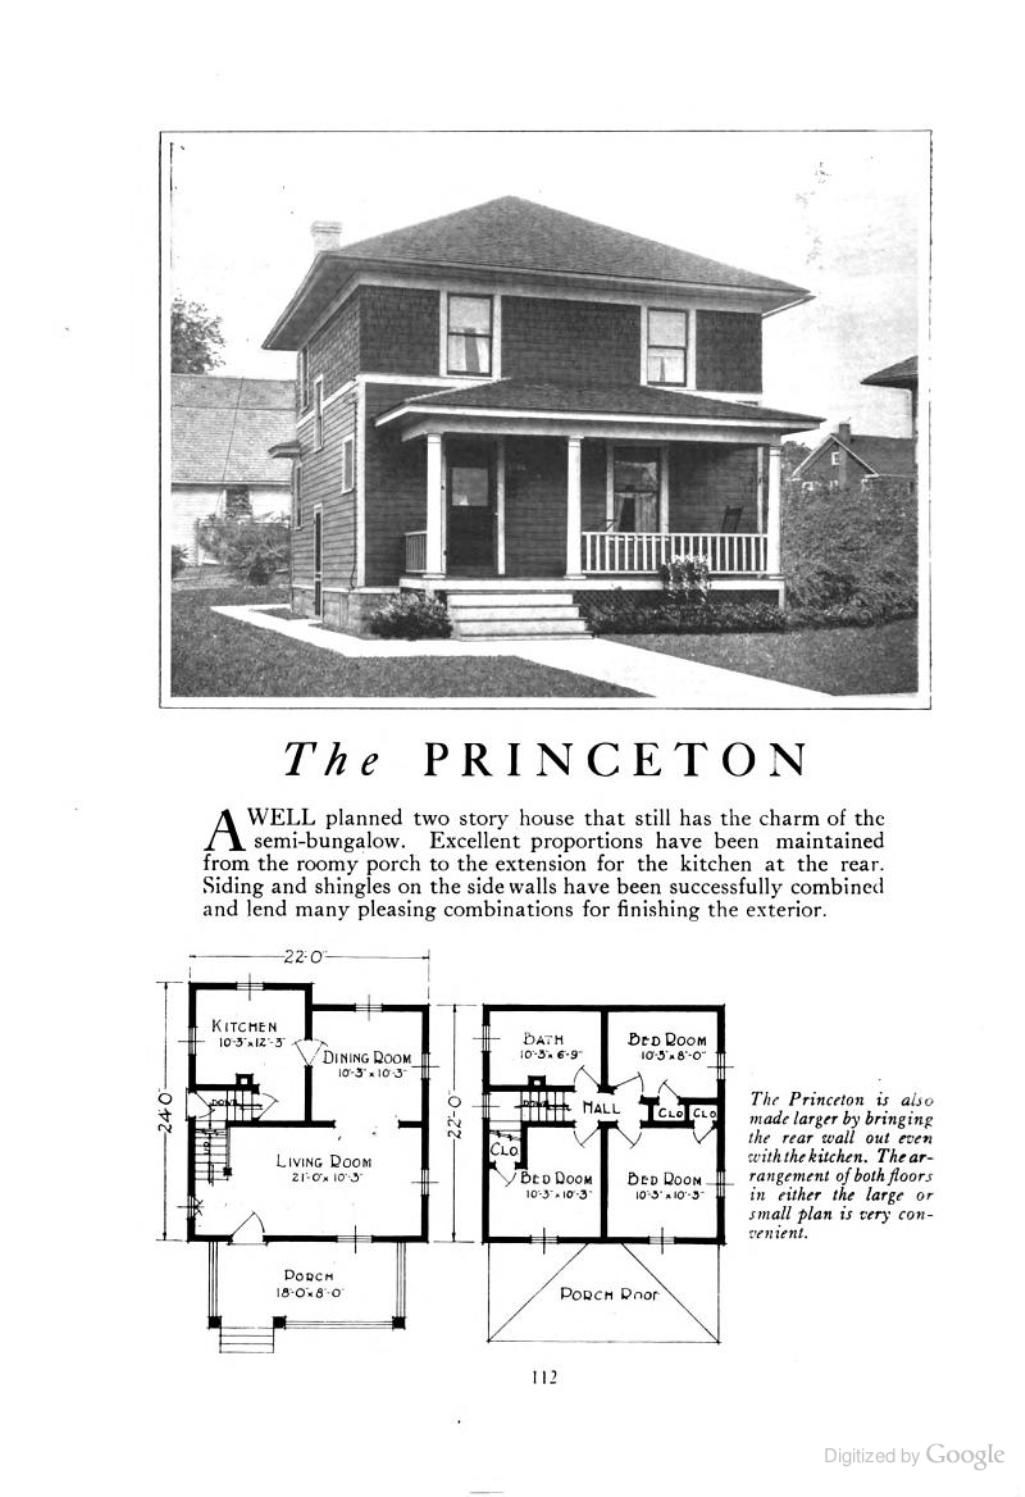 Four Squar House Design Of 1900s: The Princeton (an American Foursquare Kit House/house Plan